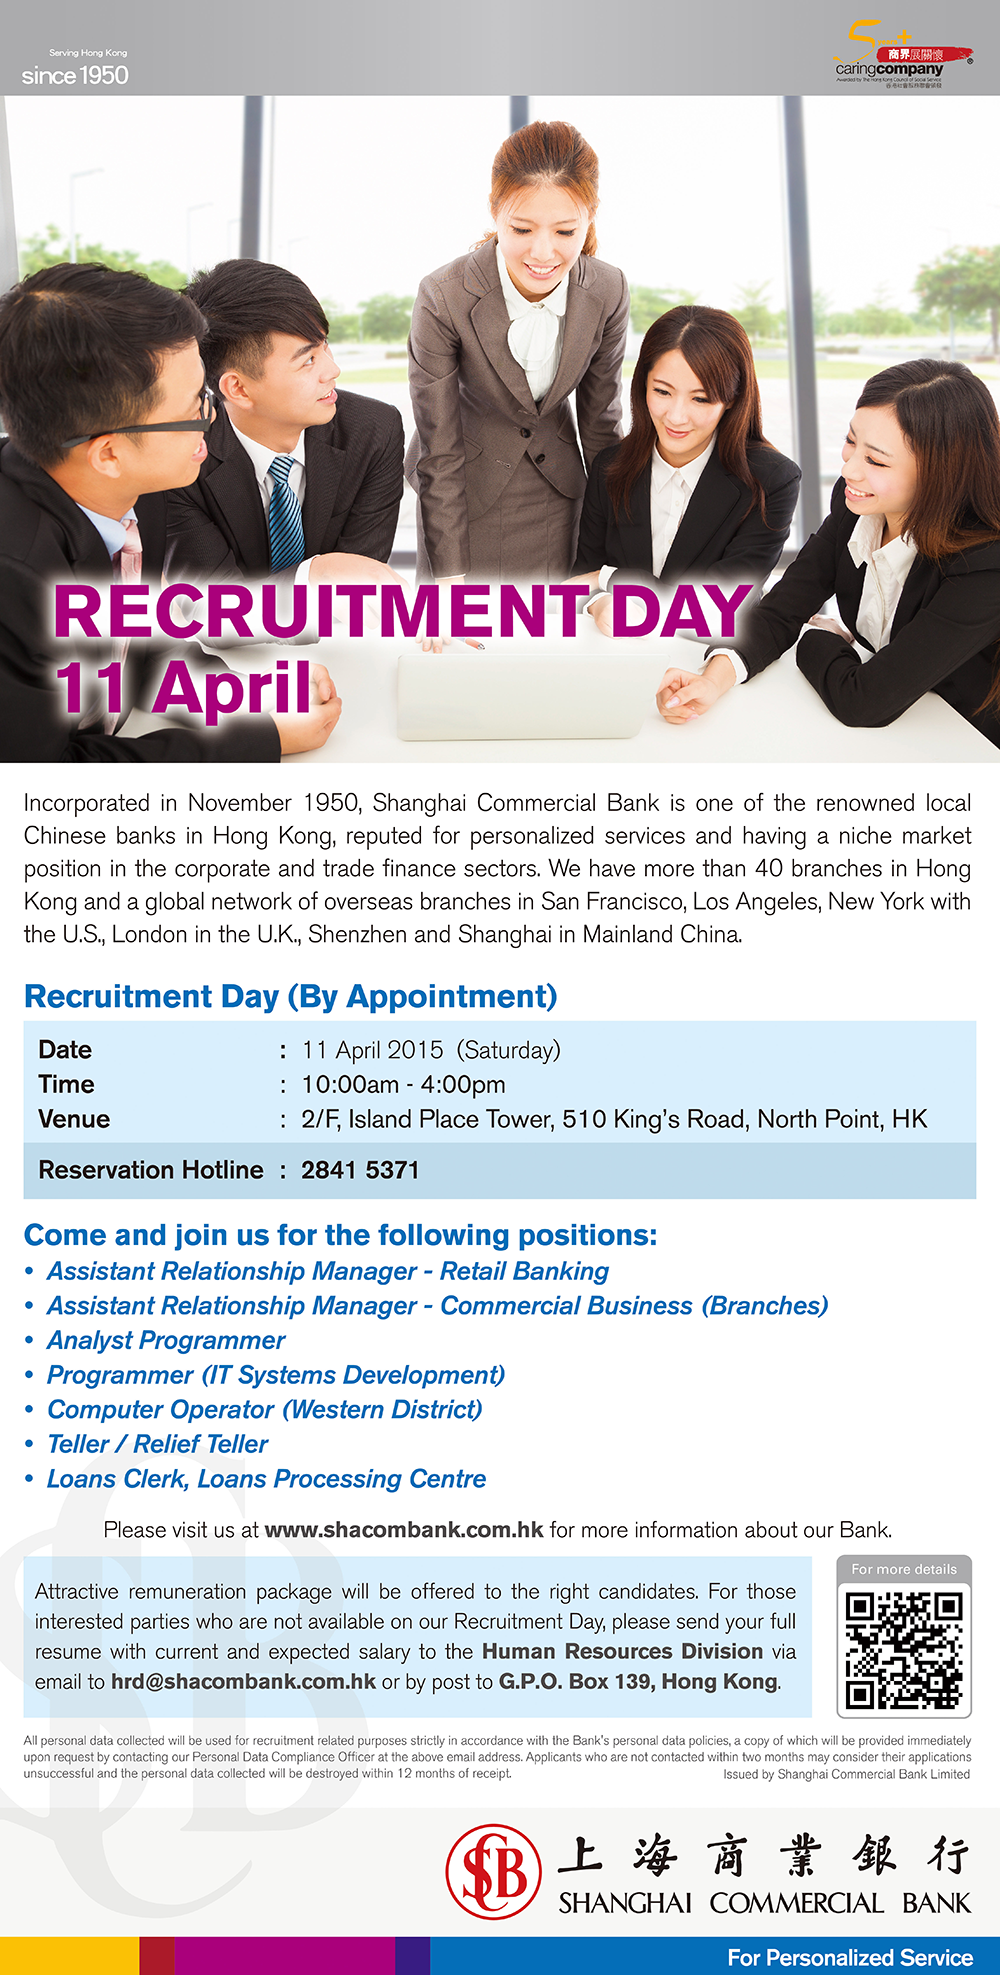 Recruitment Day on 11 April 2015 offered by Shanghai Commercial Bank